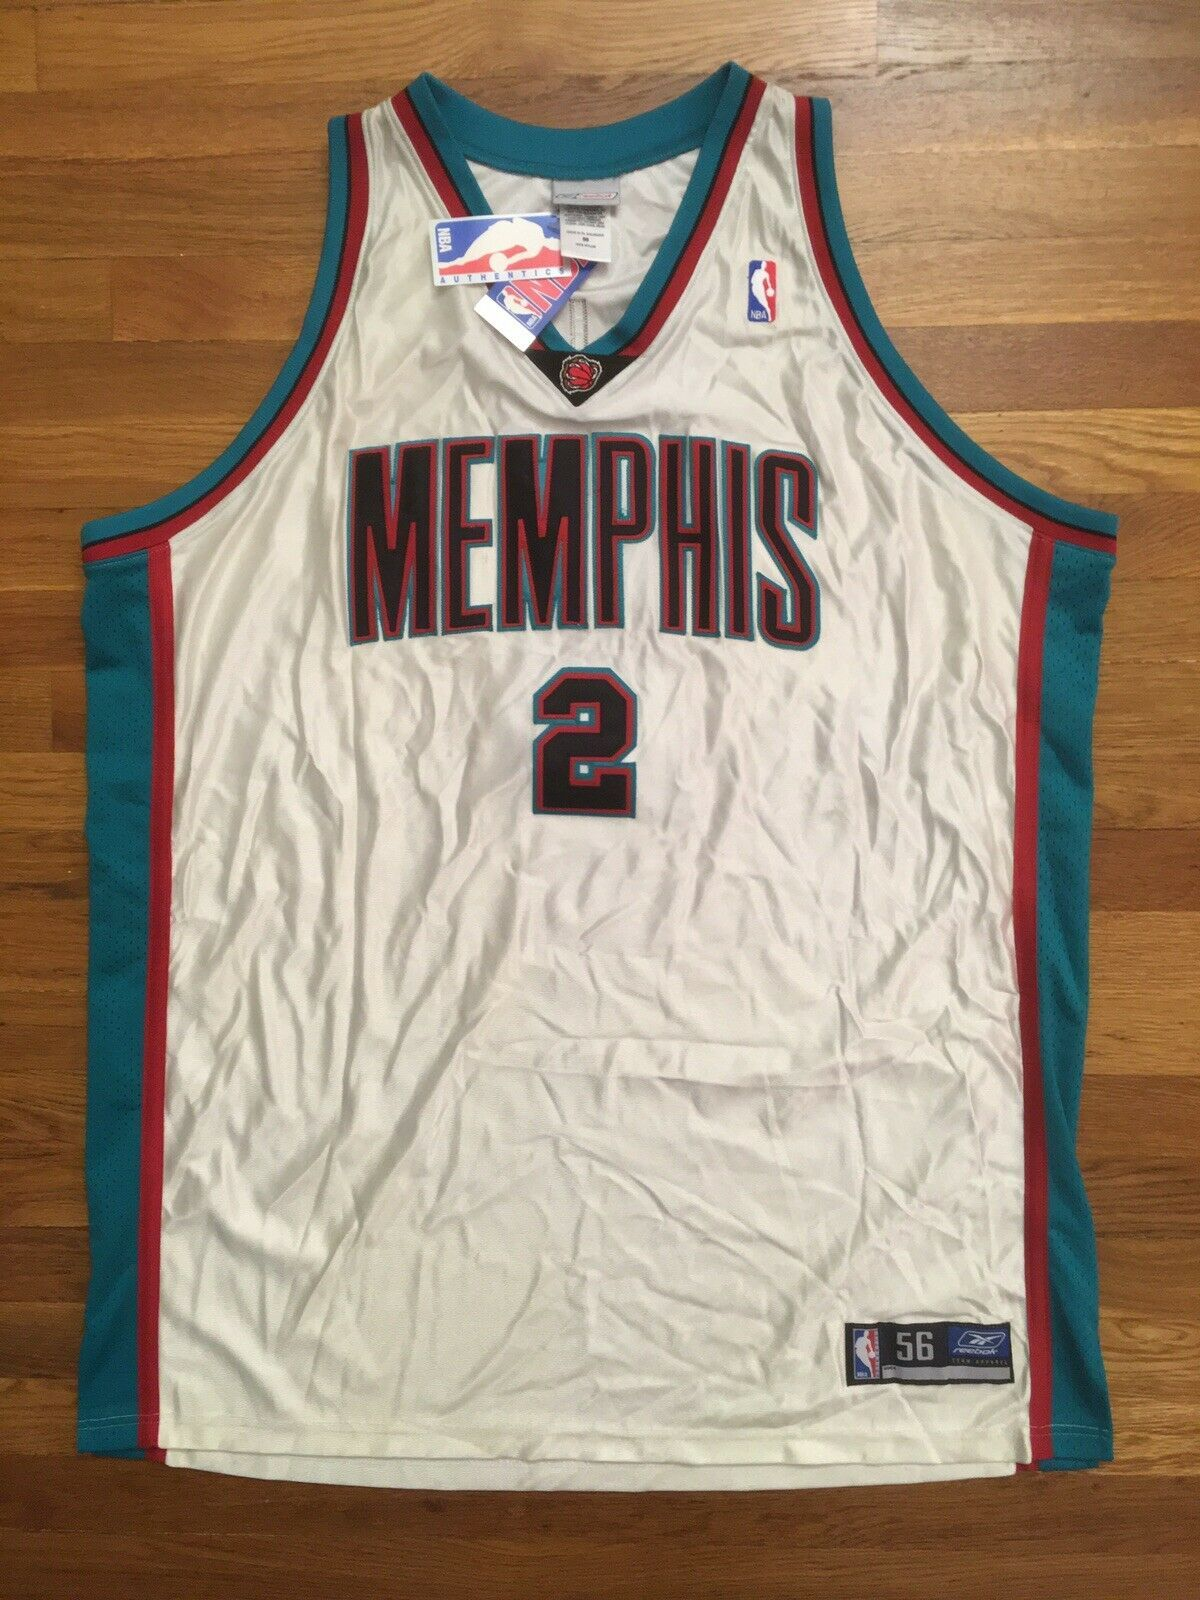 Primary image for BNWT Authentic 2002-03 Reebok Memphis Grizzlies Jason Williams White Jersey 56